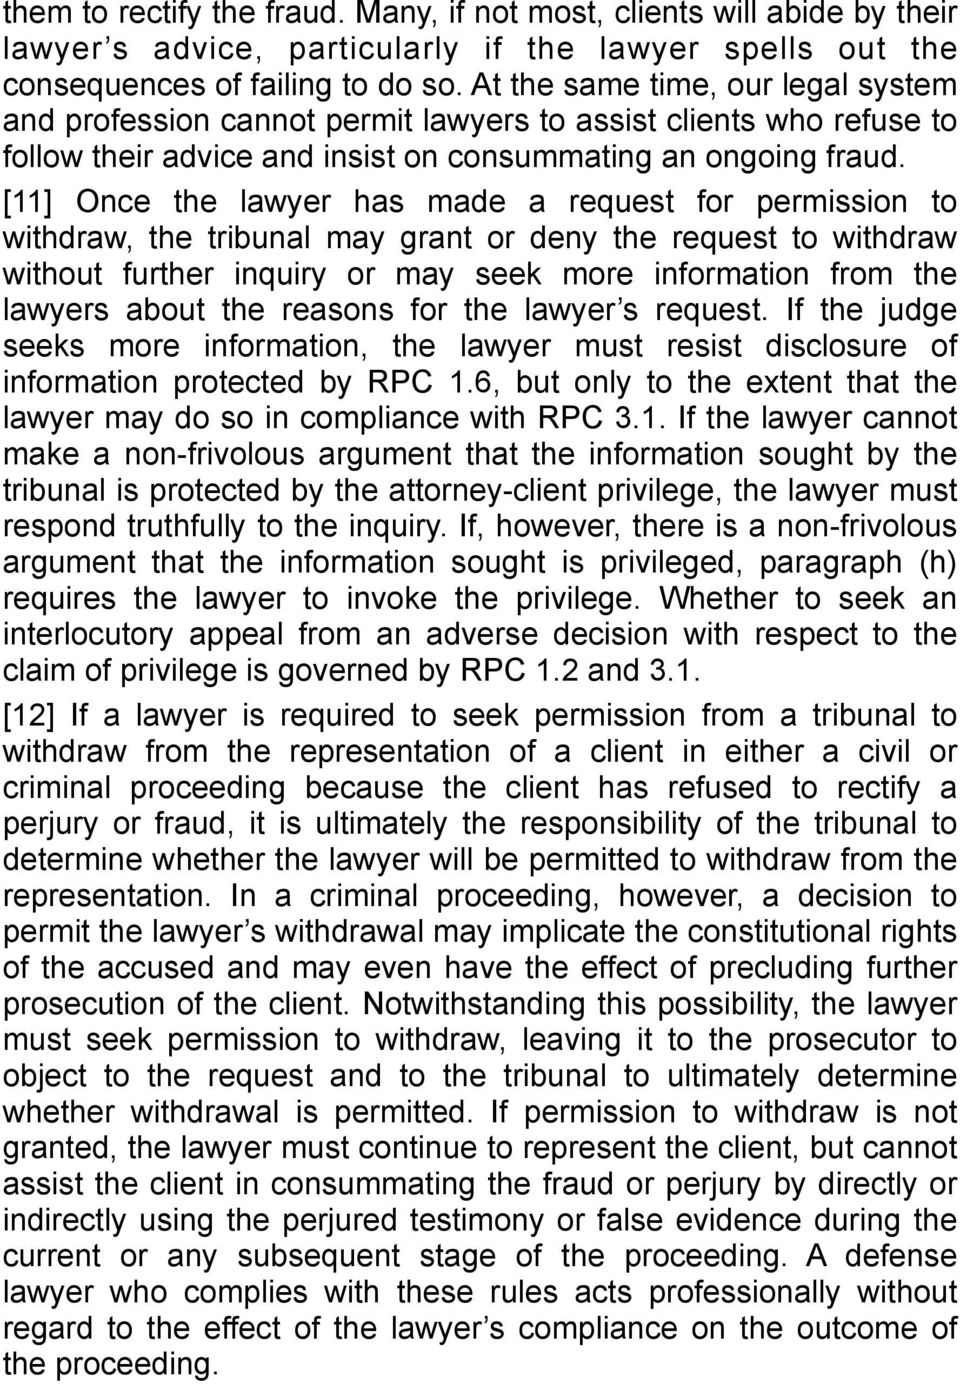 [11] Once the lawyer has made a request for permission to withdraw, the tribunal may grant or deny the request to withdraw without further inquiry or may seek more information from the lawyers about